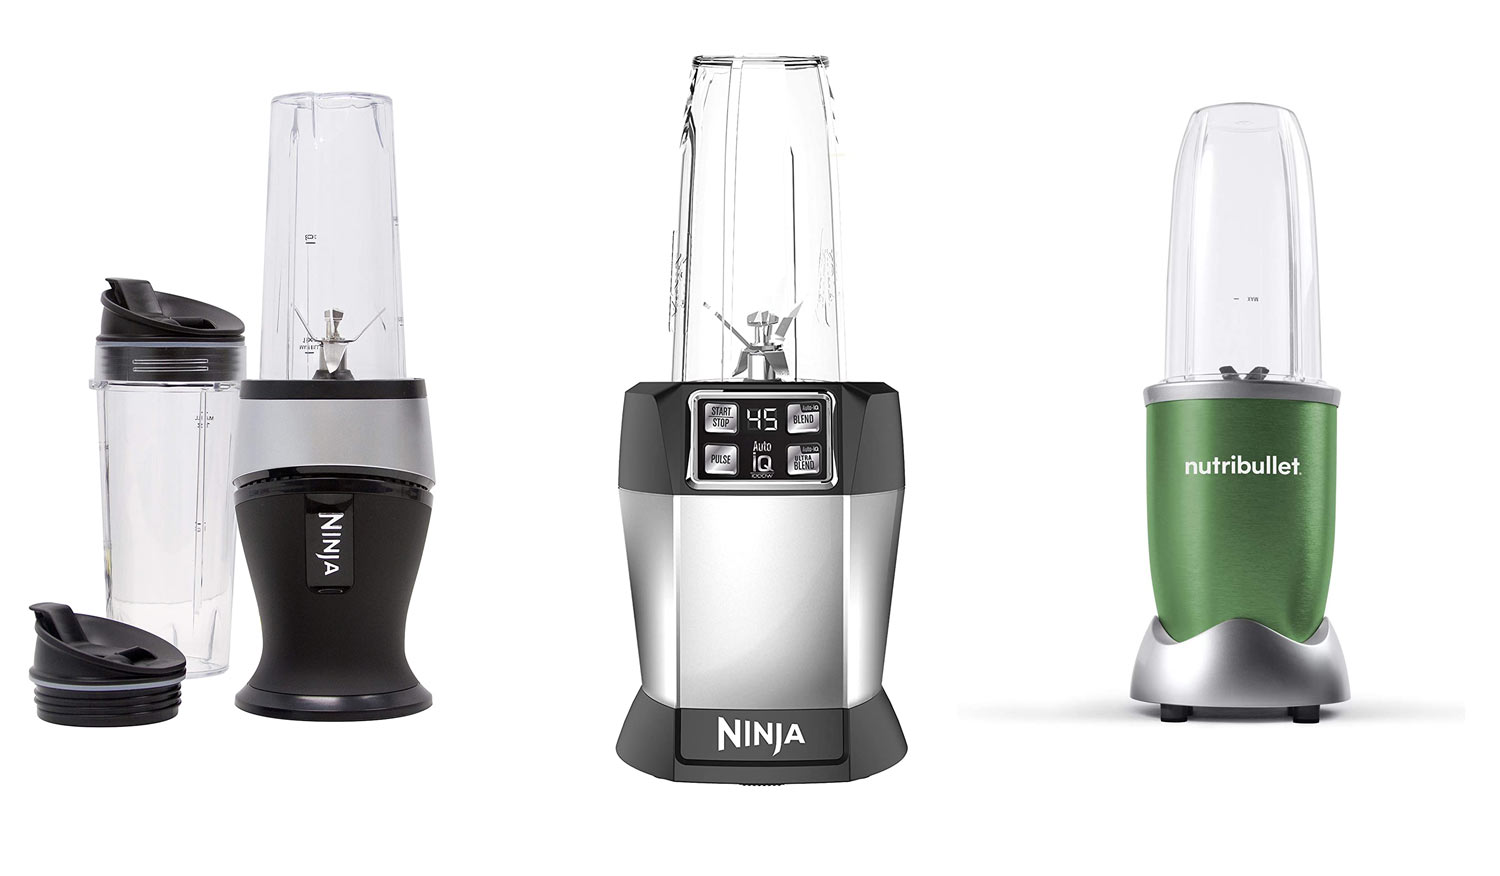 Best Personal Blender 2020 | Ninja VS Nutribullet